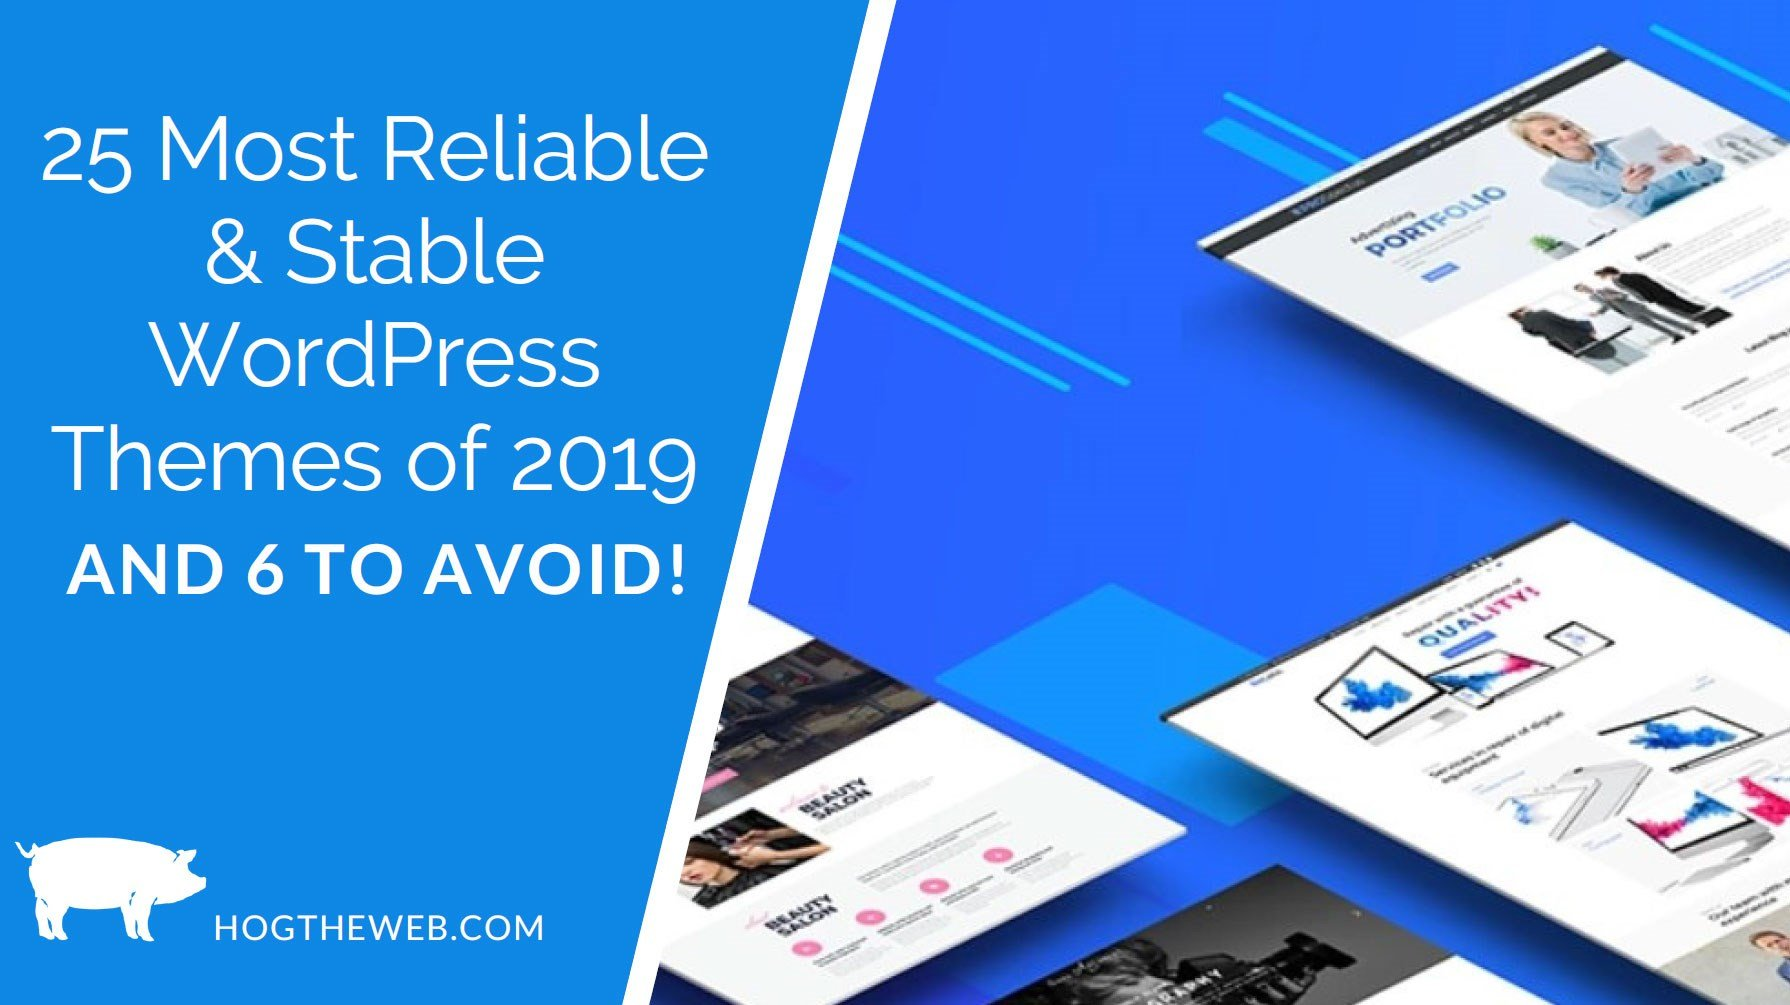 25 Most Stable & Reliable WordPress Themes of 2019 (and 6 to Avo